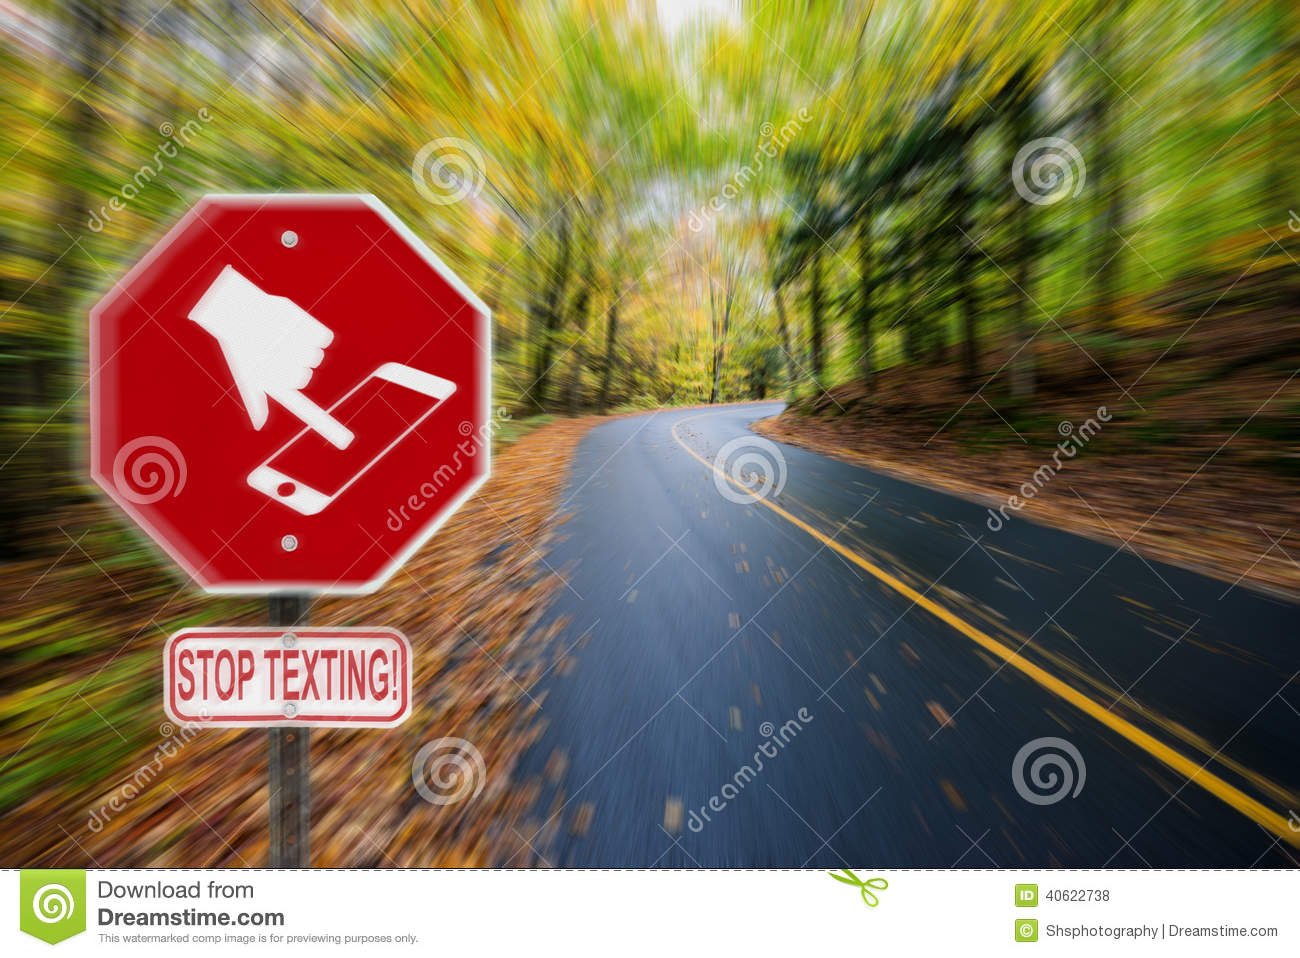 Stop texting icon sign fall country road stock photo image of royalty free stock photo buycottarizona